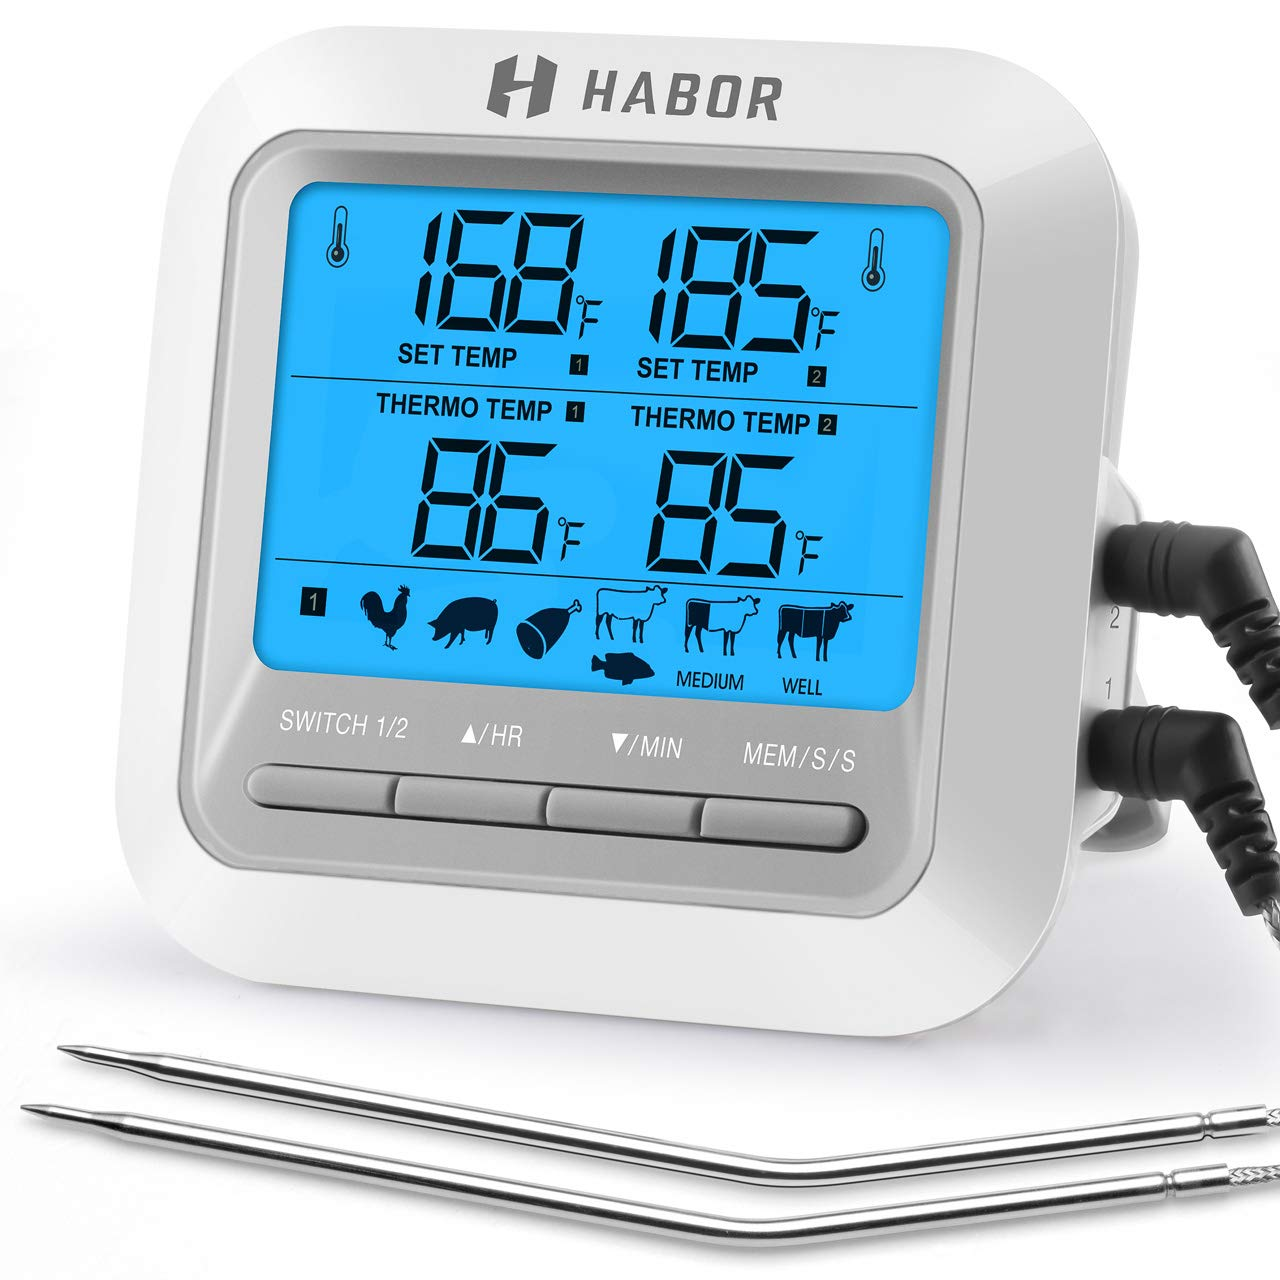 Habor 063 Dual Probe BBQ Thermometer, Digital Cooking Meat Thermometer Instant Read Food Thermometer with Large LCD Backlight & Timer Mode for Kitchen Smoker Oven Grill Turkey Beef Candy Milk Water